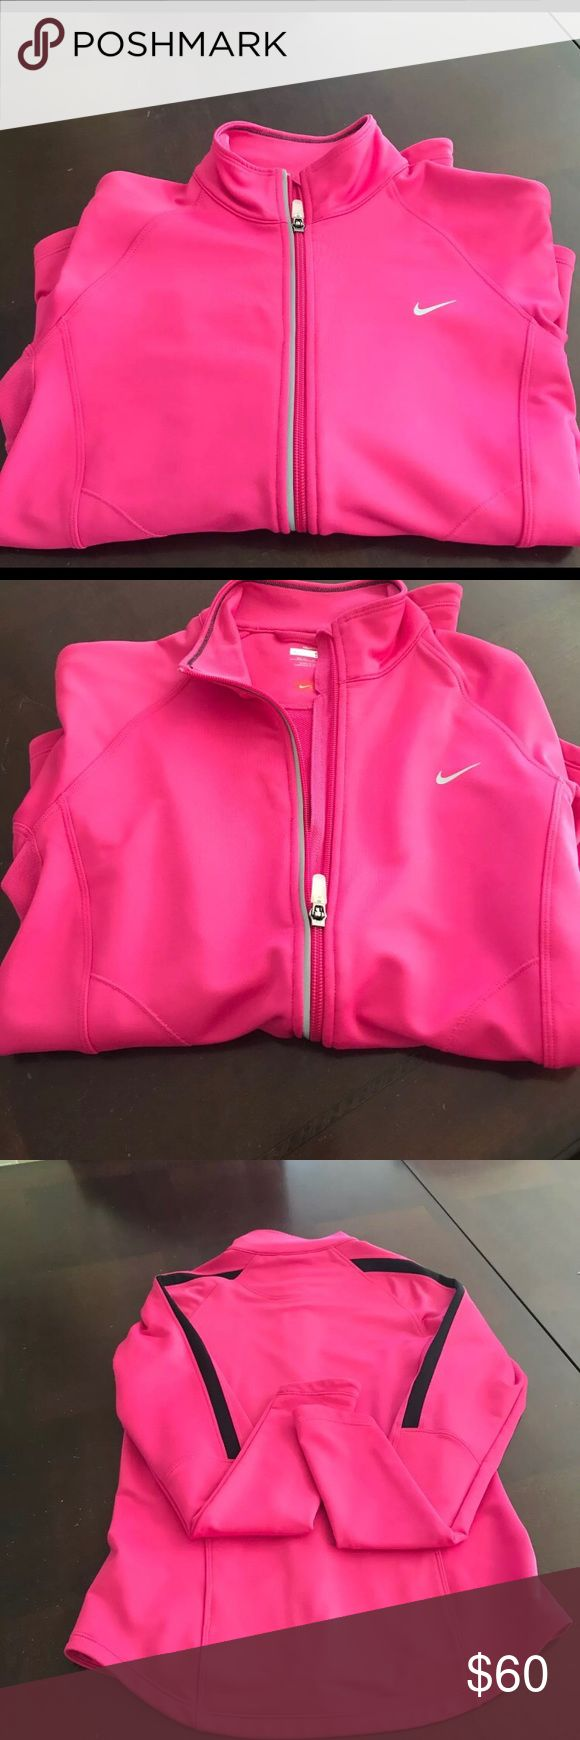 Nike Sport Jacket Pink Jacket Nike Sport Jacket  Women Pink Jacket  Sleeves some black  Size Small (4-6} Nike fit Dry  80% Polyester  10% Spandex  Preowned  Excellent Condition Nike Jackets & Coats Utility Jackets